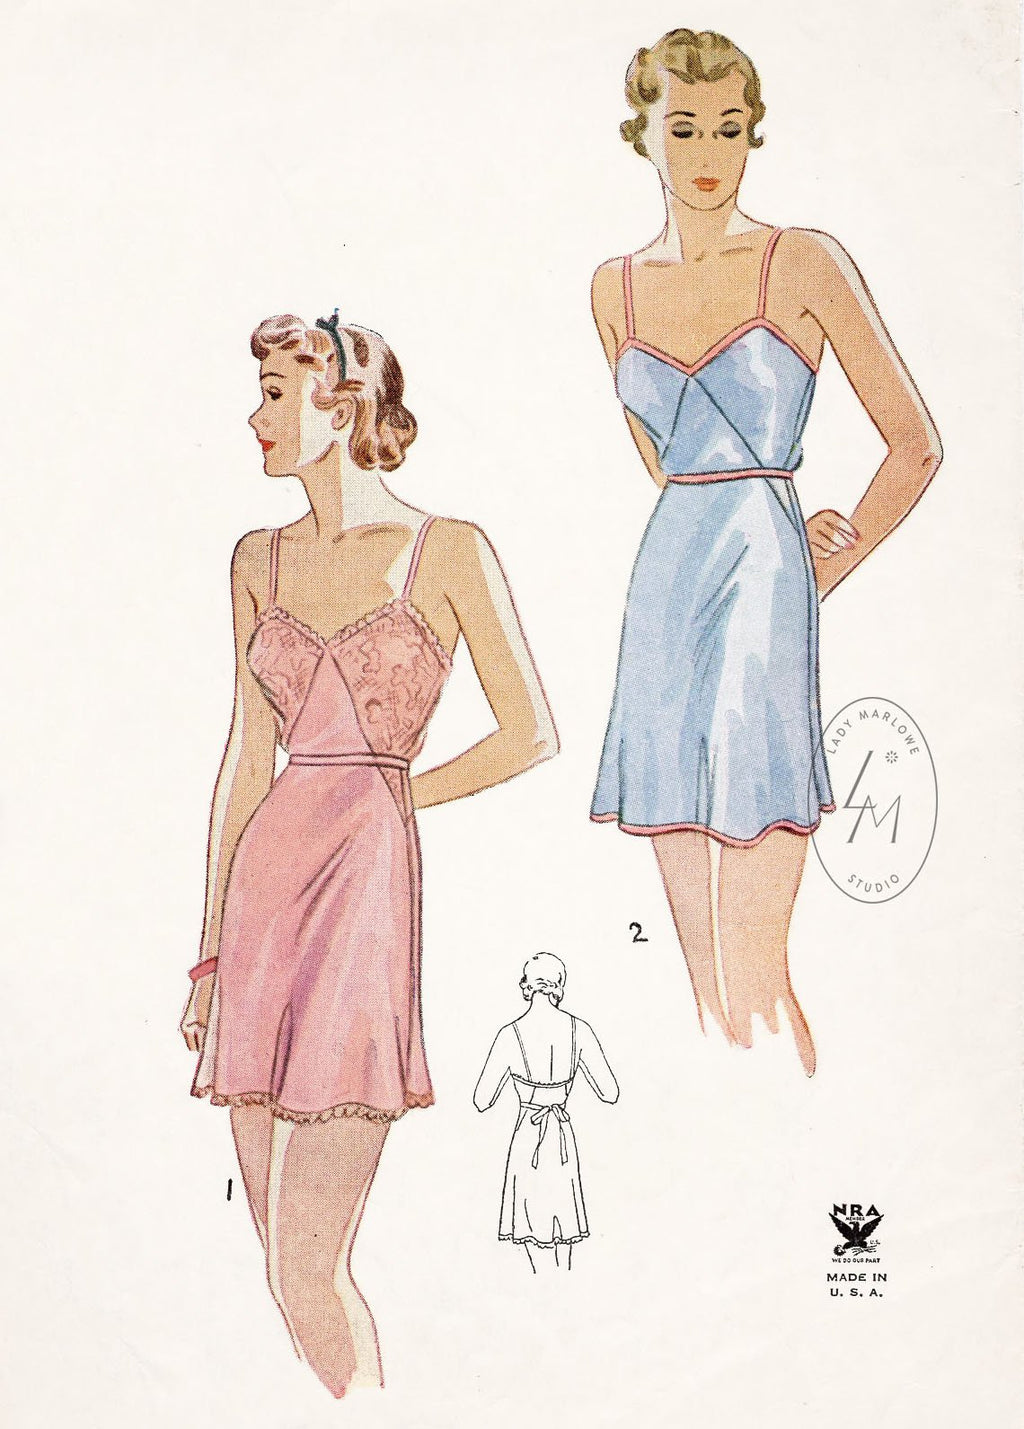 1930s 30s Simplicity 1551 vintage lingerie sewing pattern step in teddy romper reproduction